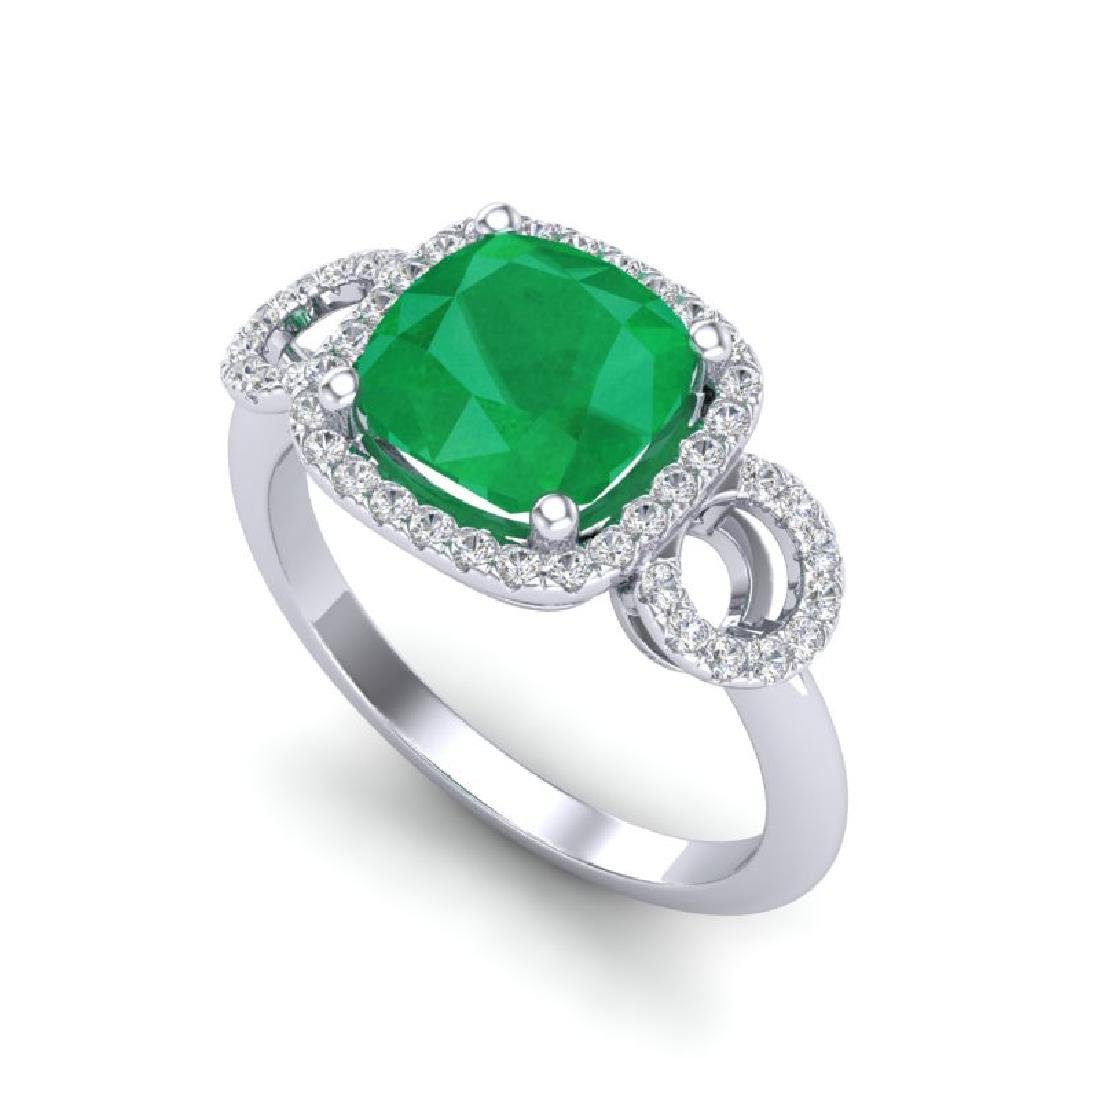 3.15 CTW Emerald & Micro VS/SI Diamond Ring 18K White - 2